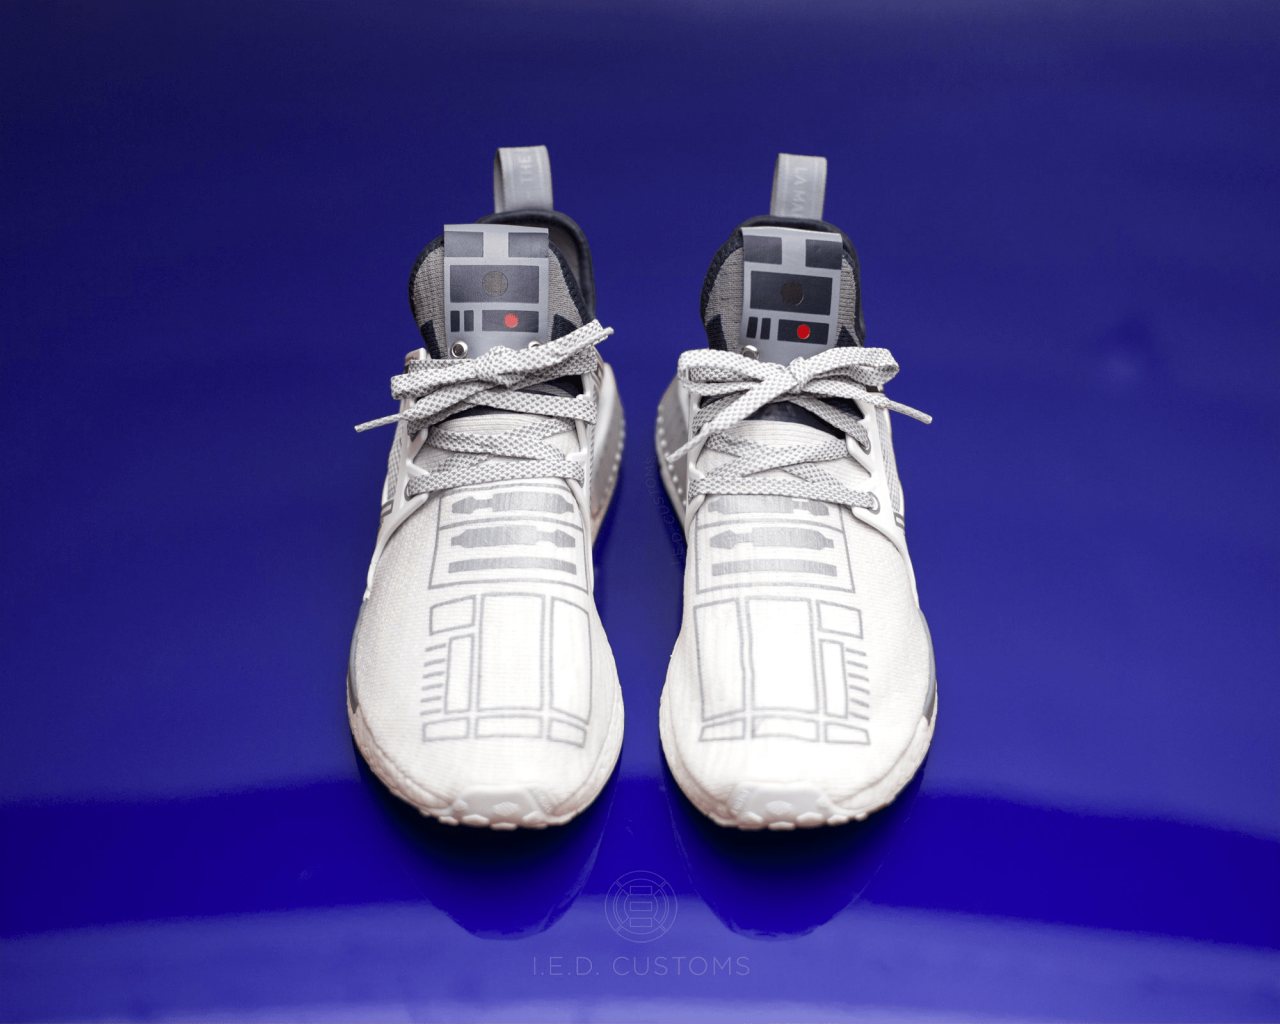 Innovated Elemental Designs (IED) R2D2 NMDs